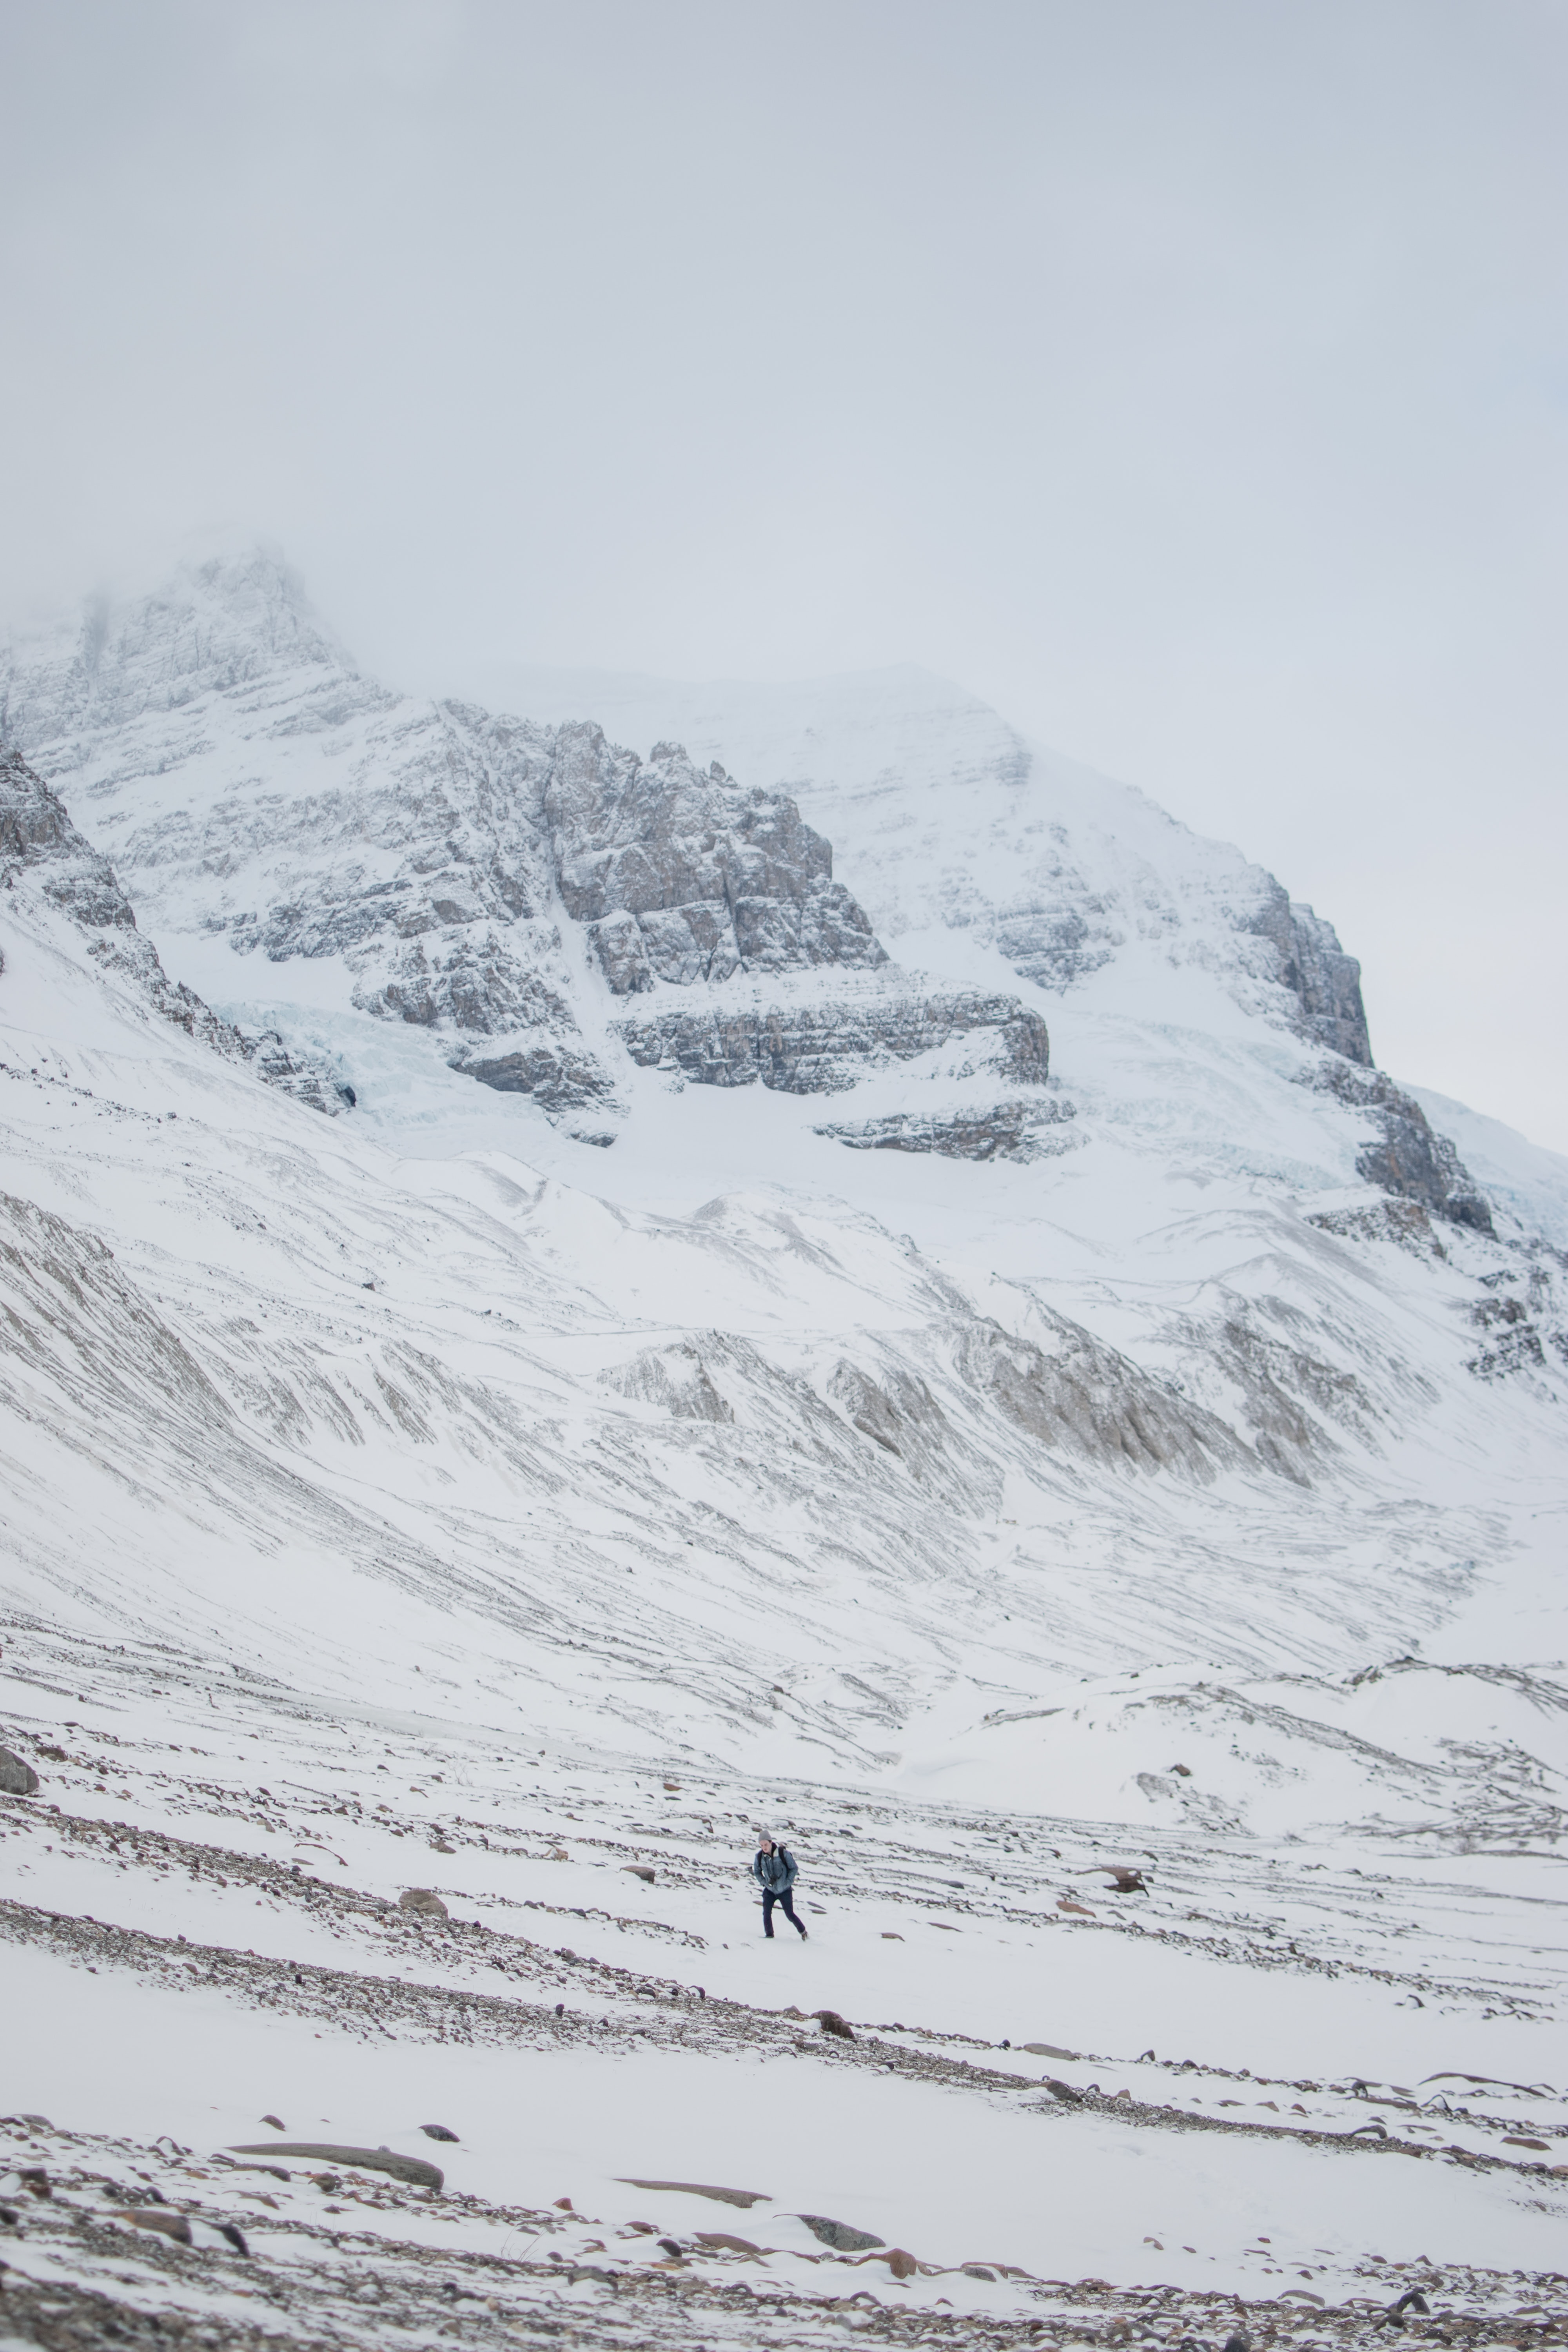 Hiker in dark colors walks at the base of the snowy, icy Athabasca Glacier